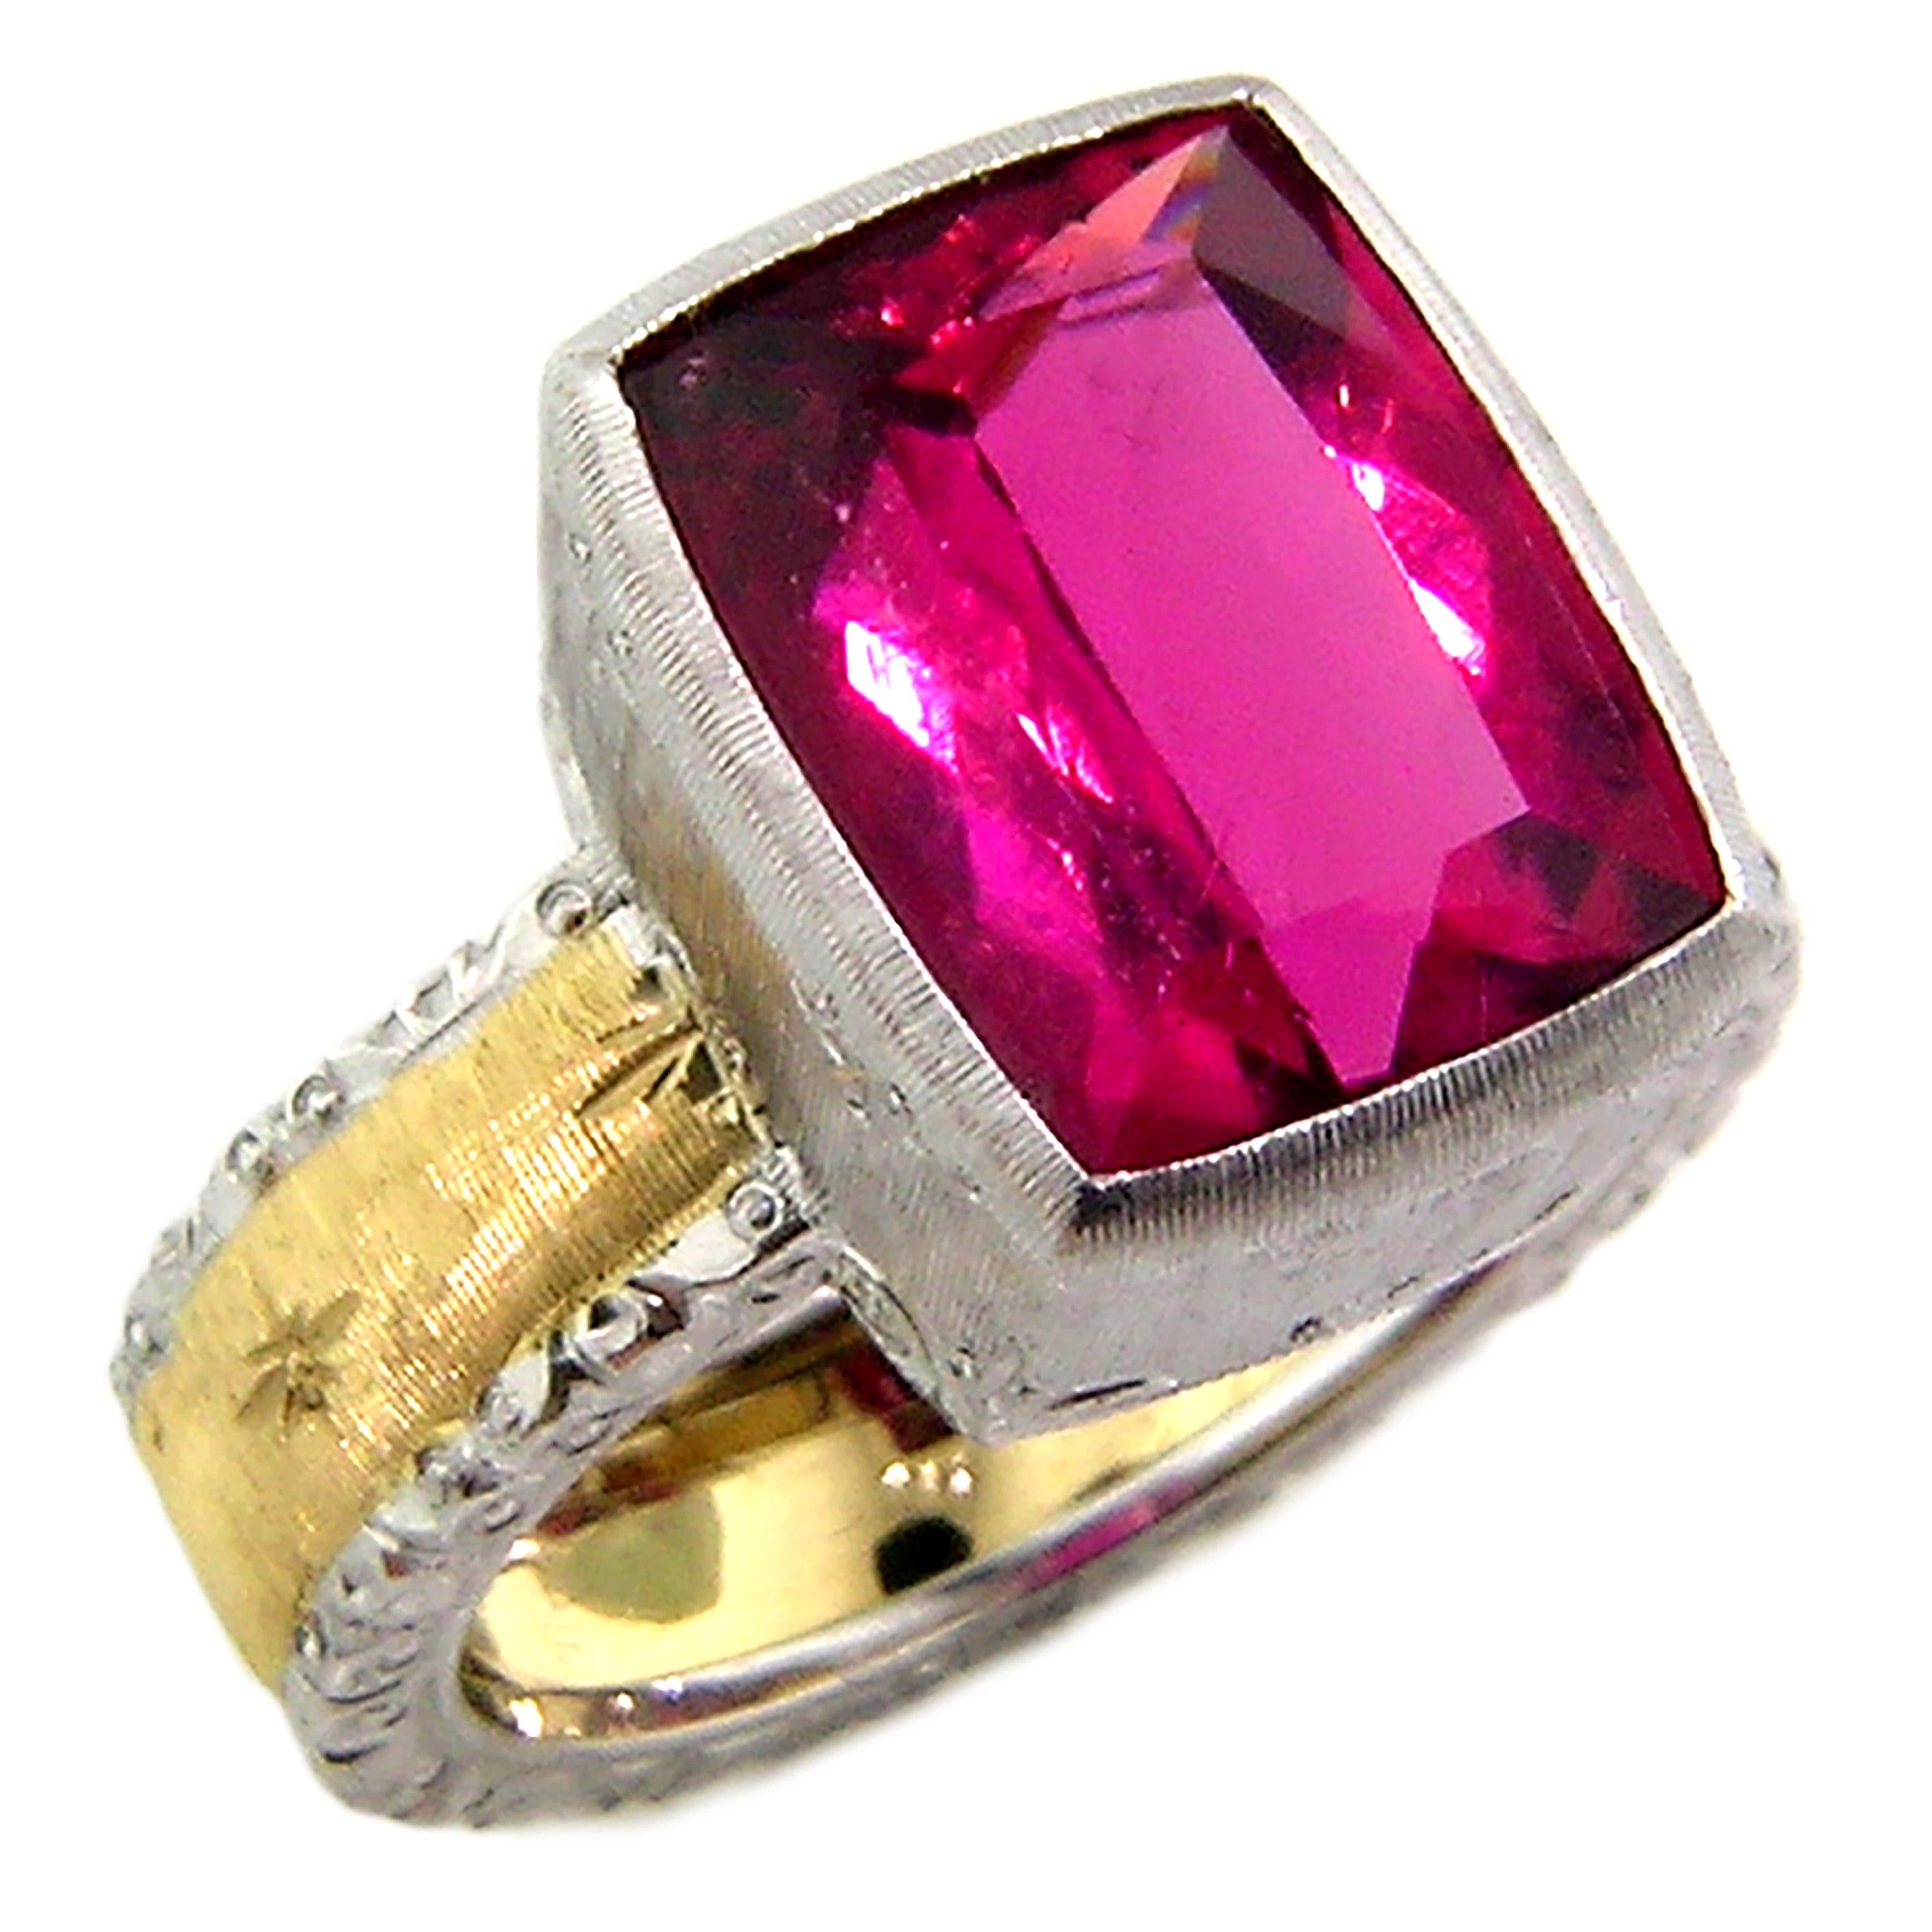 5.95ct Rubellite Tourmaline 18kt Ring, Made in Italy by Cynthia Scott Jewelry